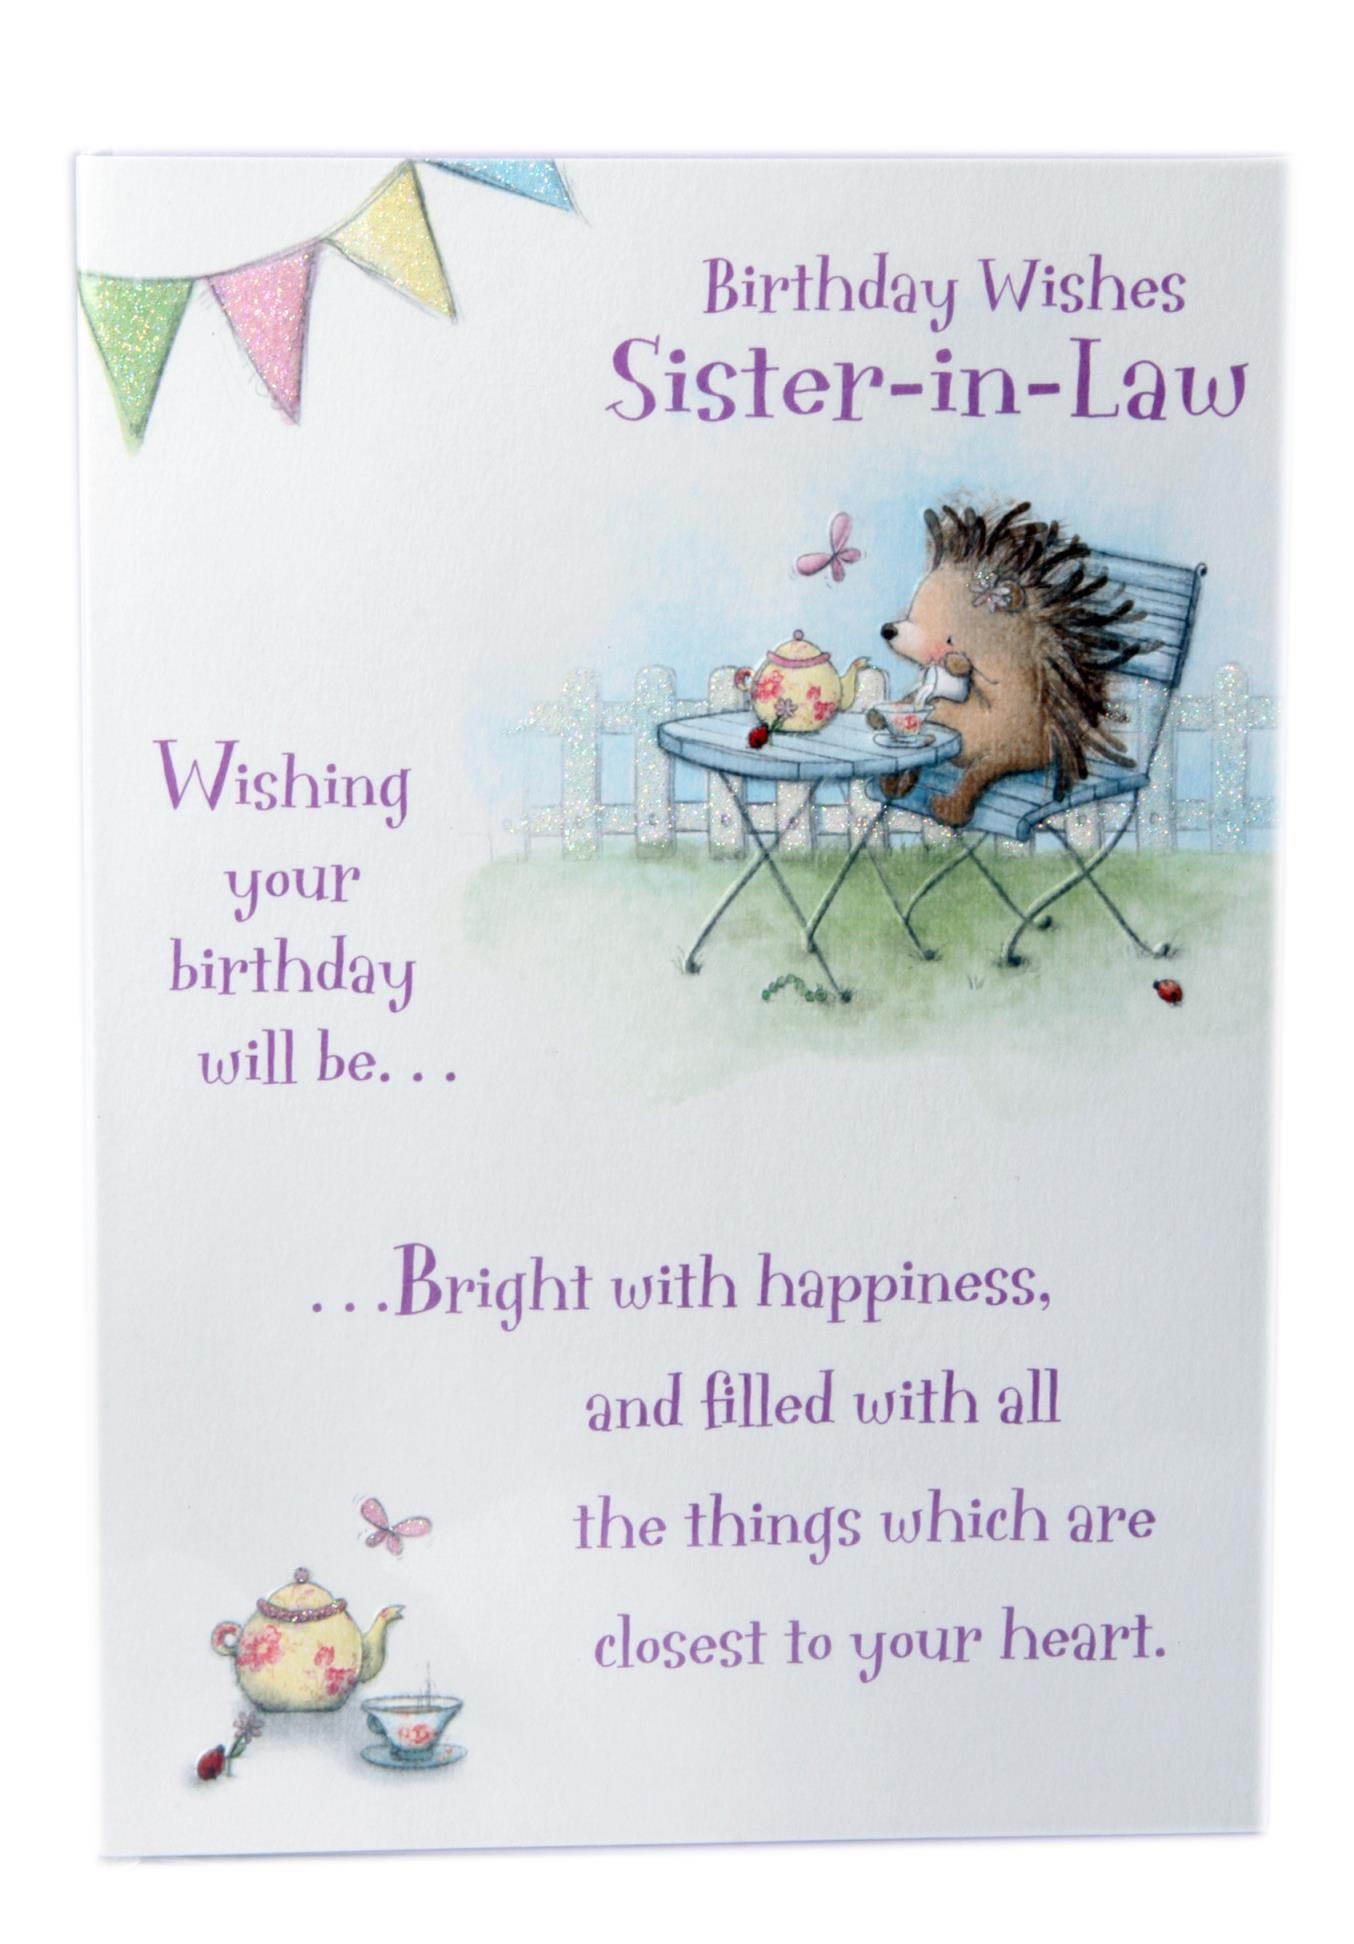 Check Out These Birthday Quotes For Sister In Law And More To Download The Most Awesome Image